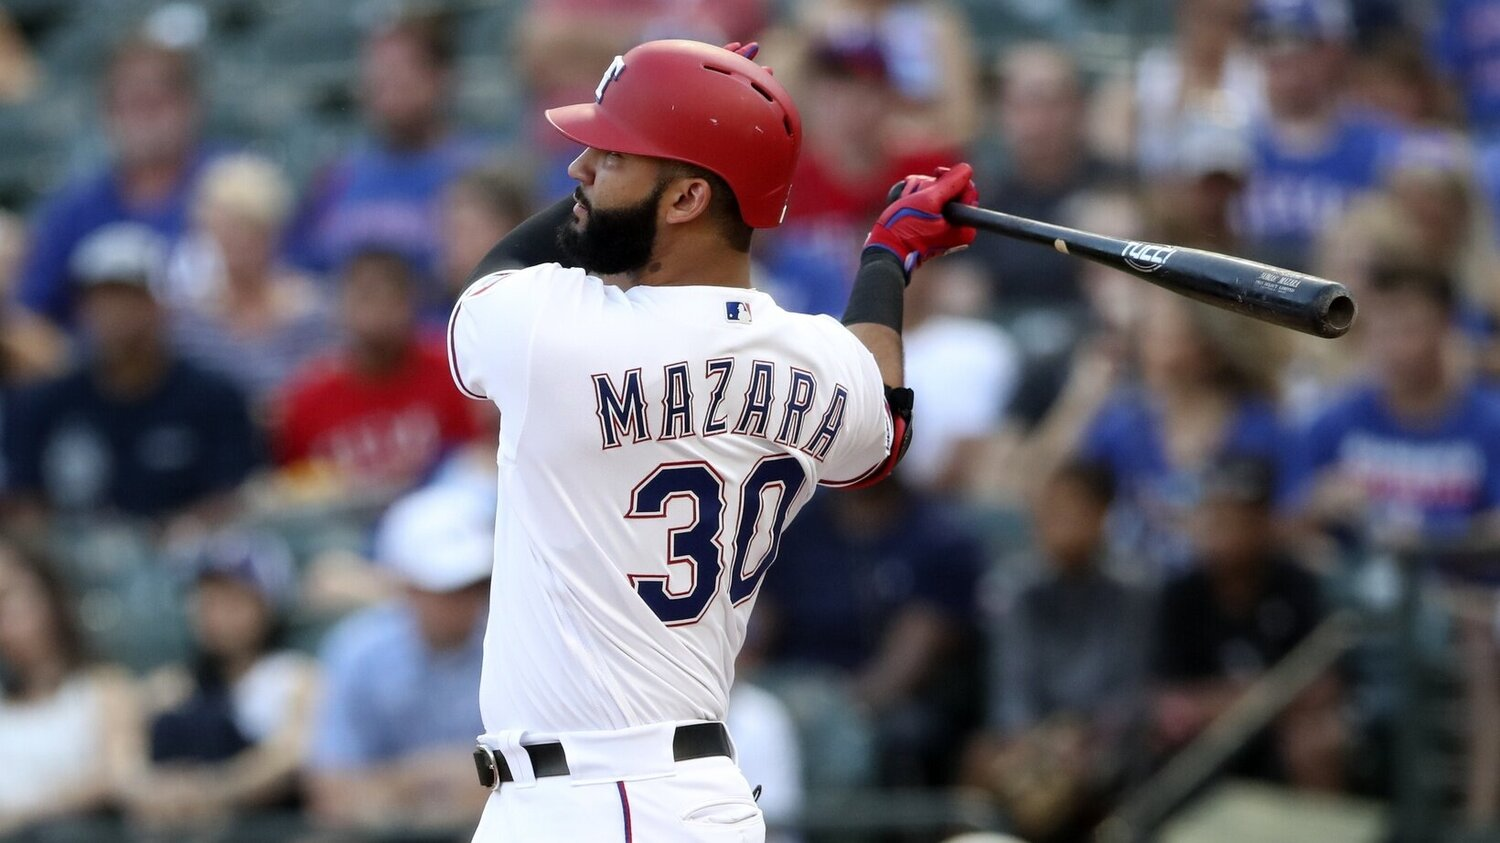 Longest Home Runs 2020.White Sox Acquire Mazara Walker Becomes Texas Ranger